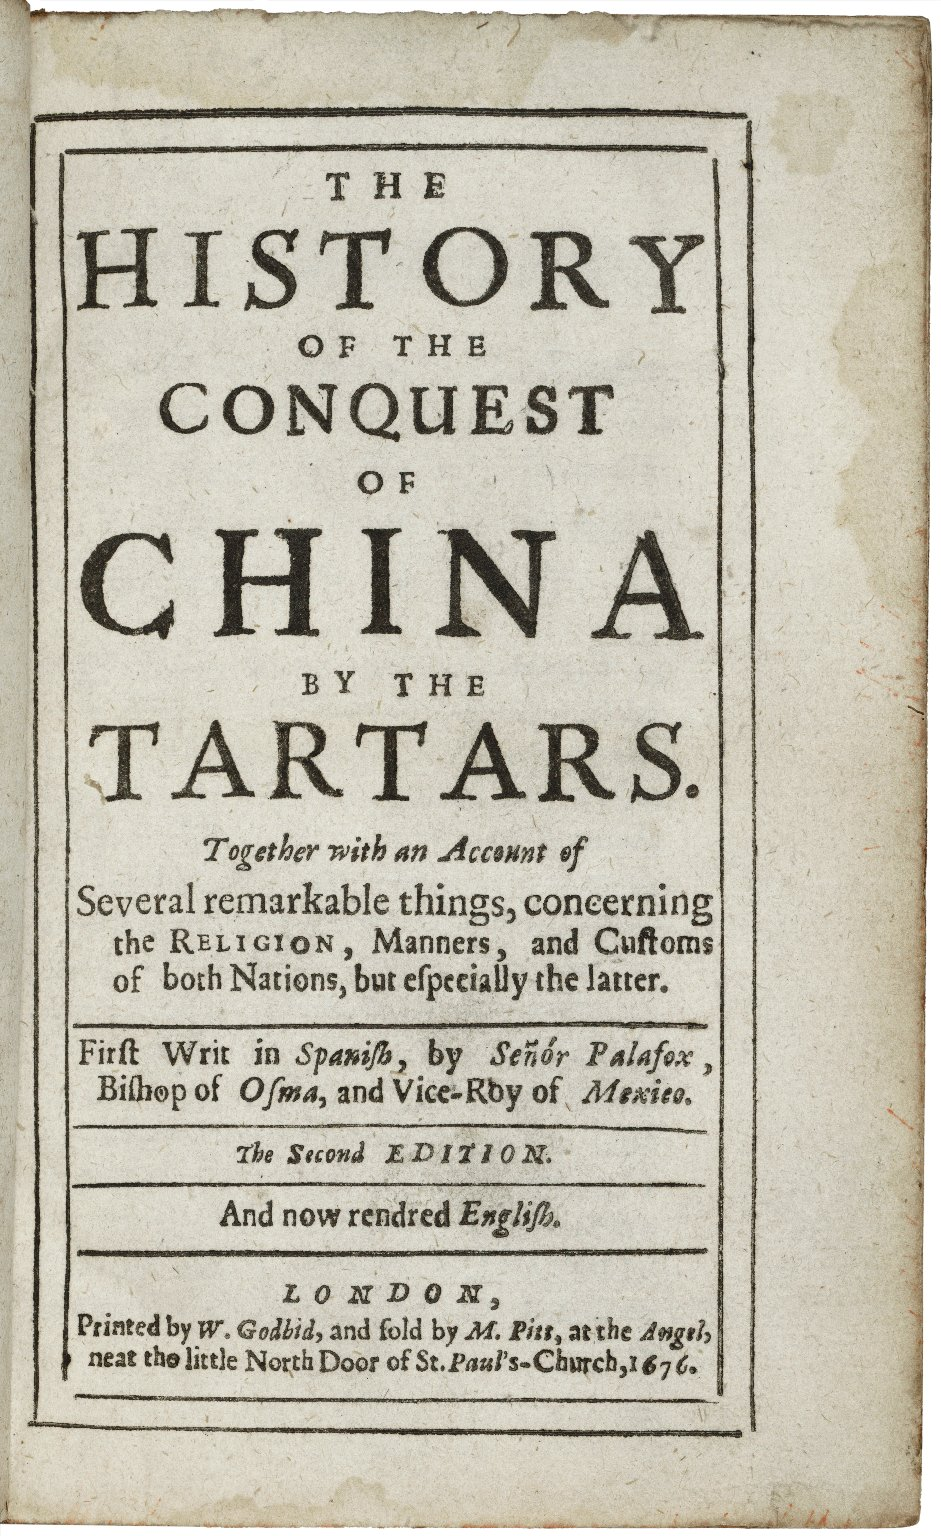 The history of the conquest of China by the Tartars ...